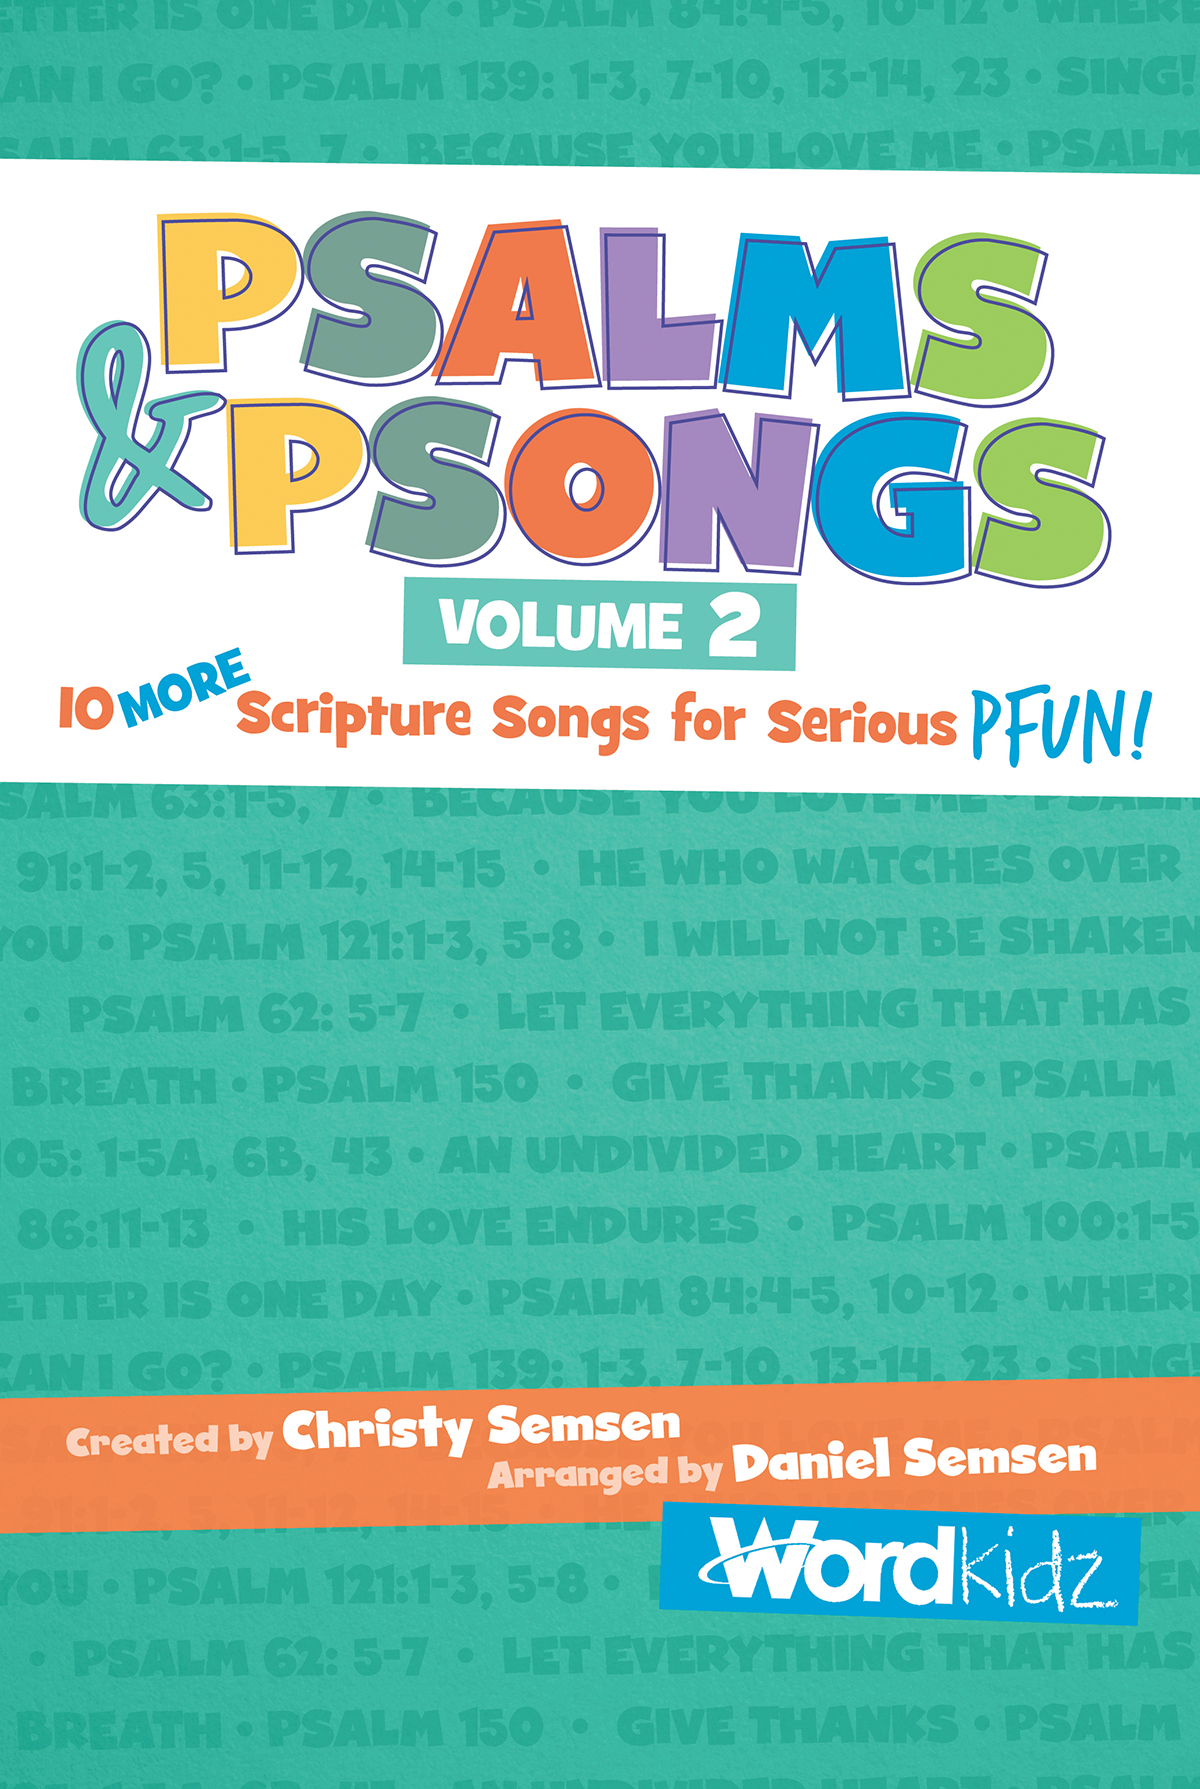 Psalms & Psongs Volume 2